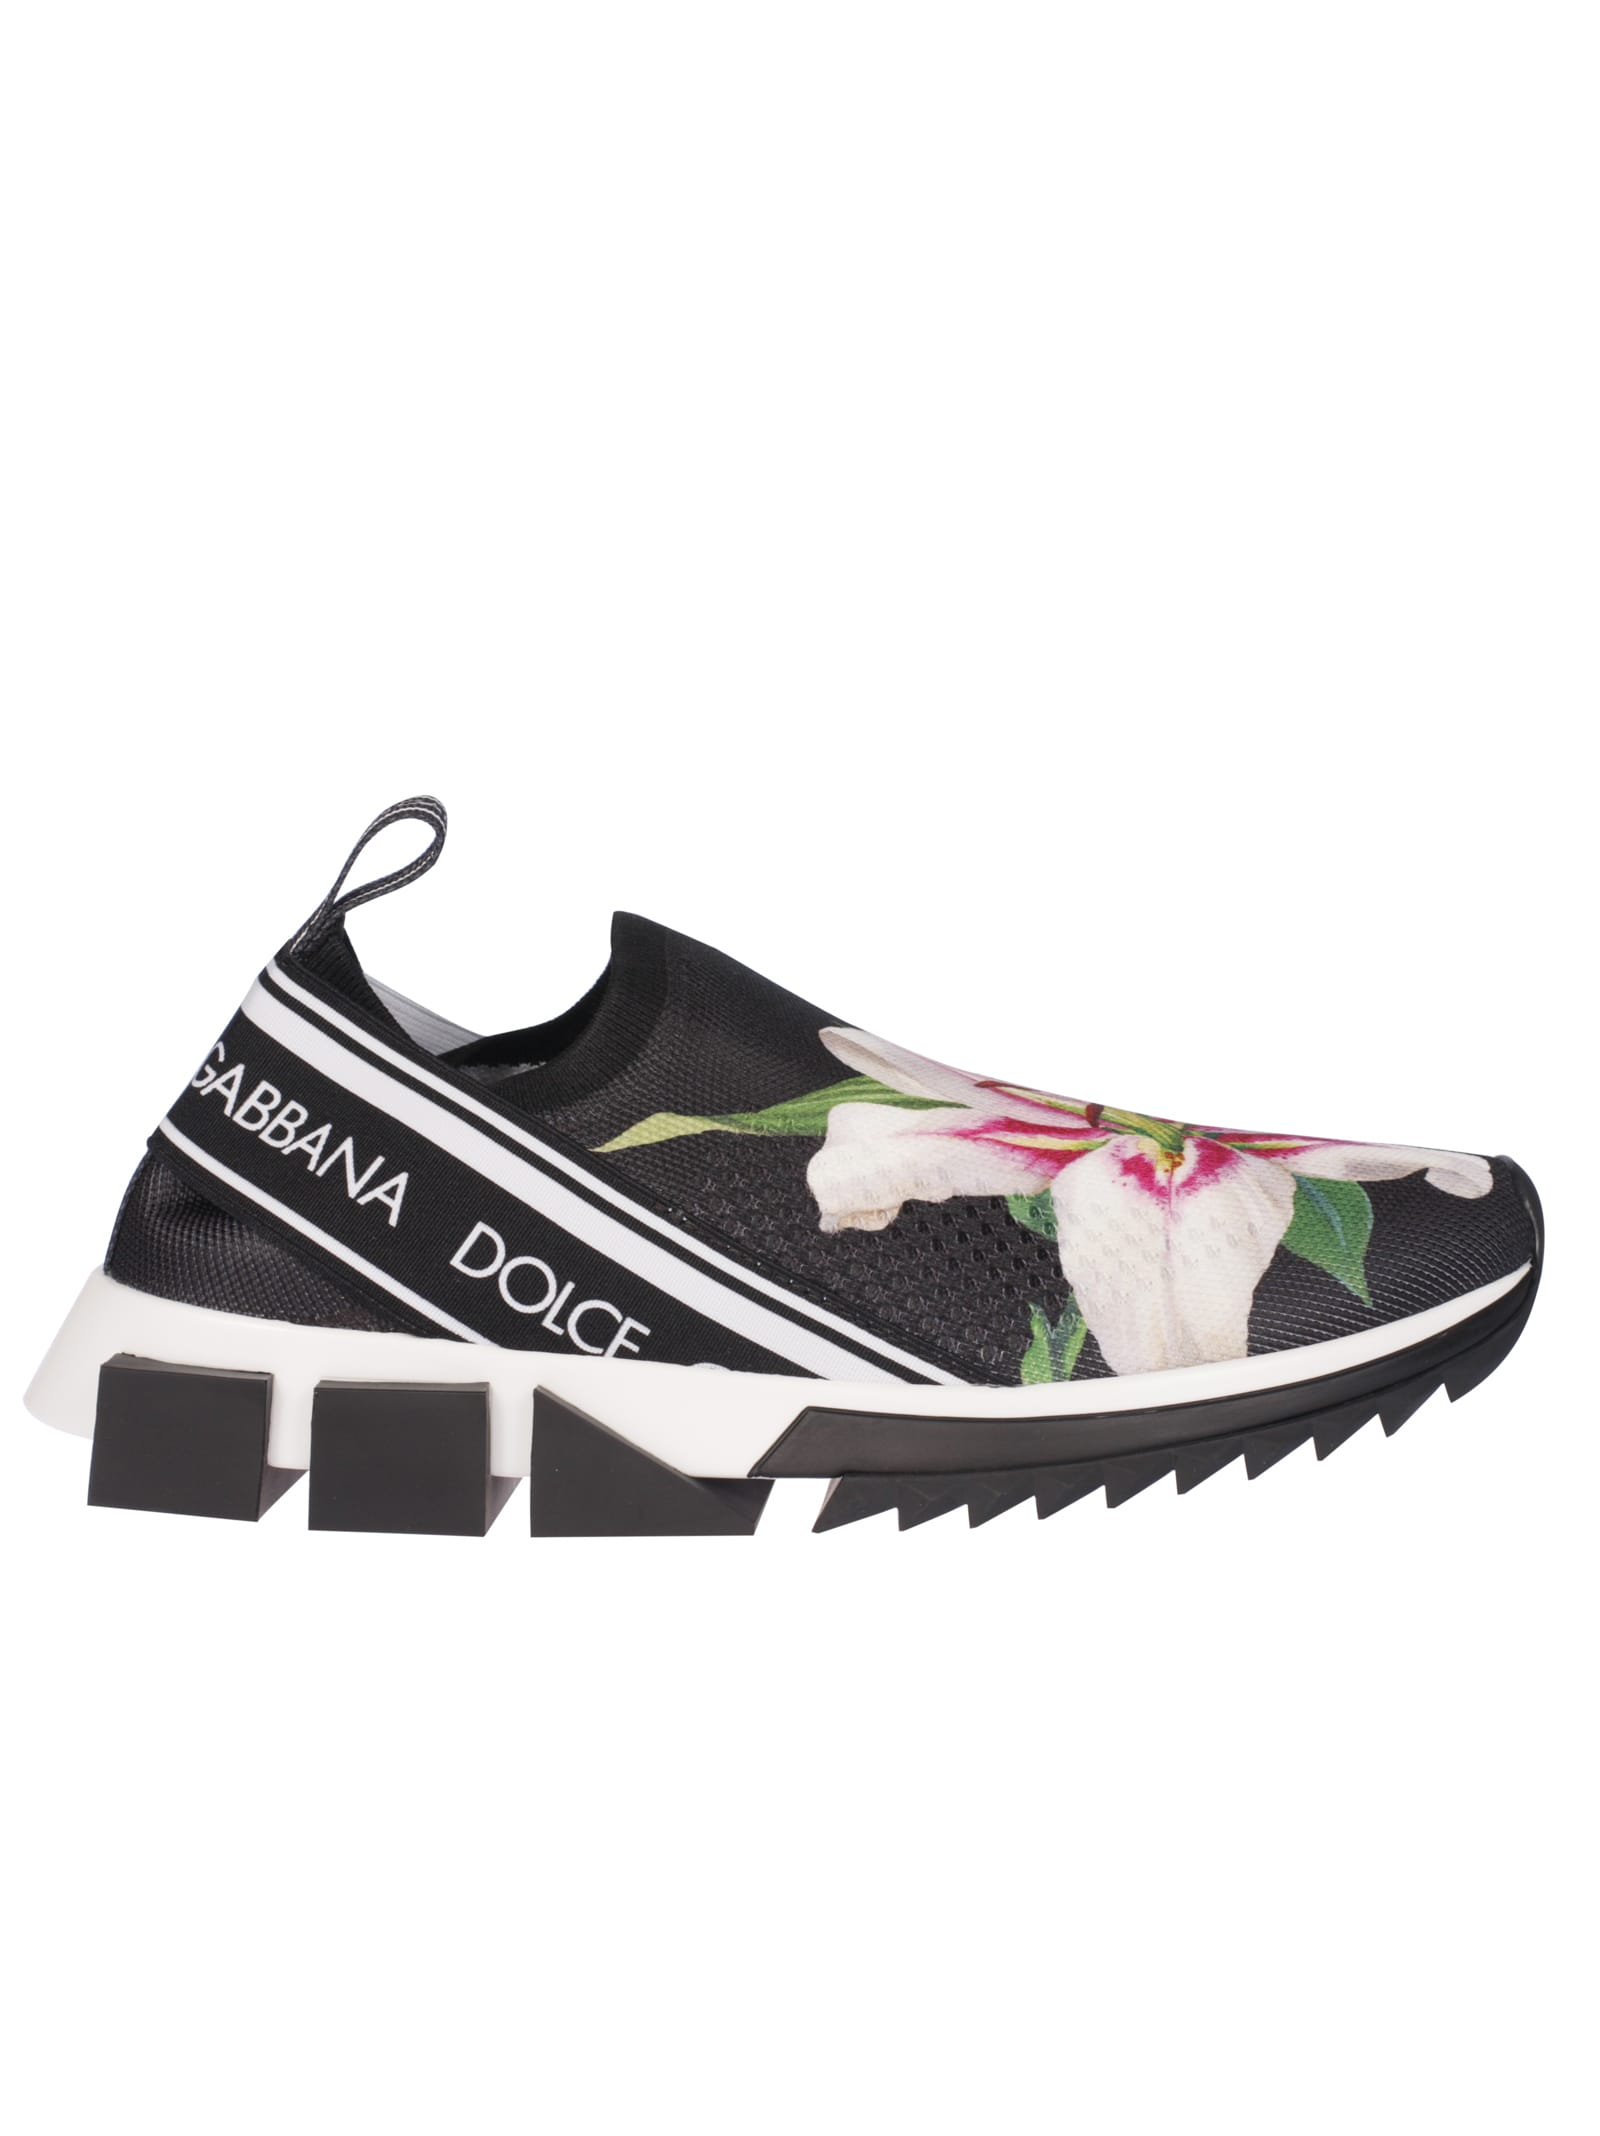 super popolare 1e992 6d7f6 Best price on the market at italist | Dolce & Gabbana Dolce & Gabbana  Floral Slip-on Sneakers